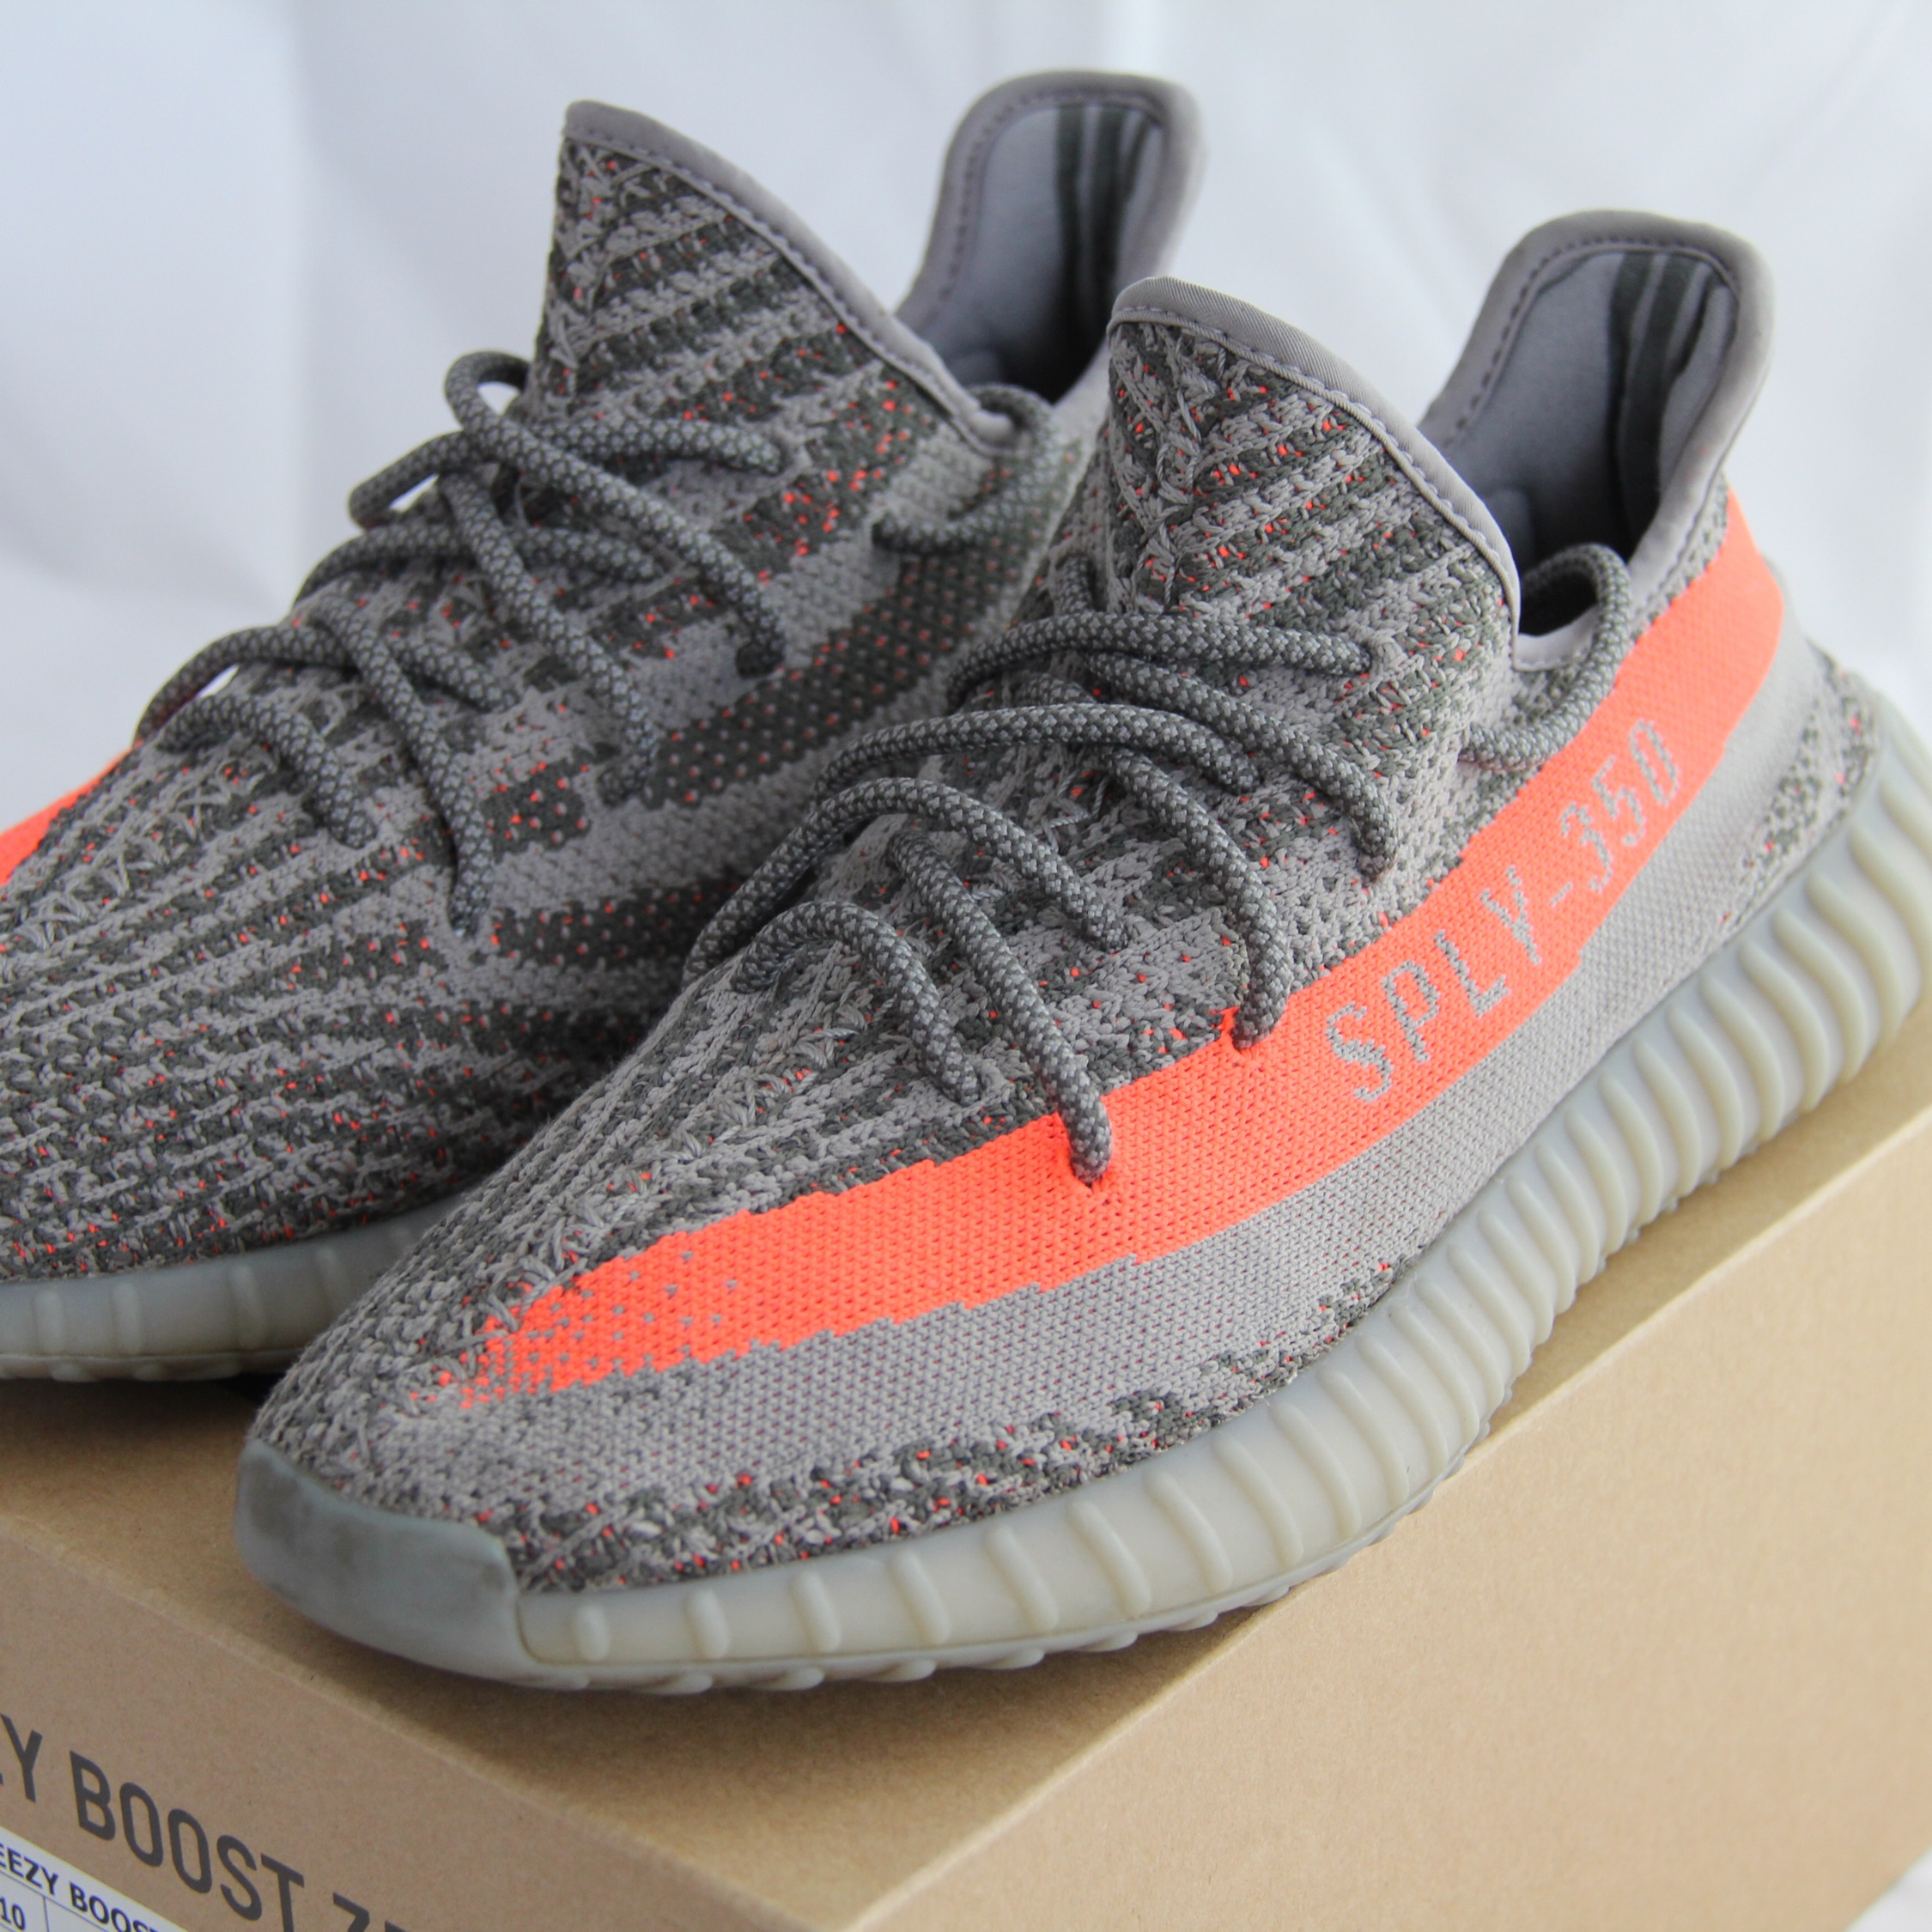 yeezy beluga 2.0 worth y